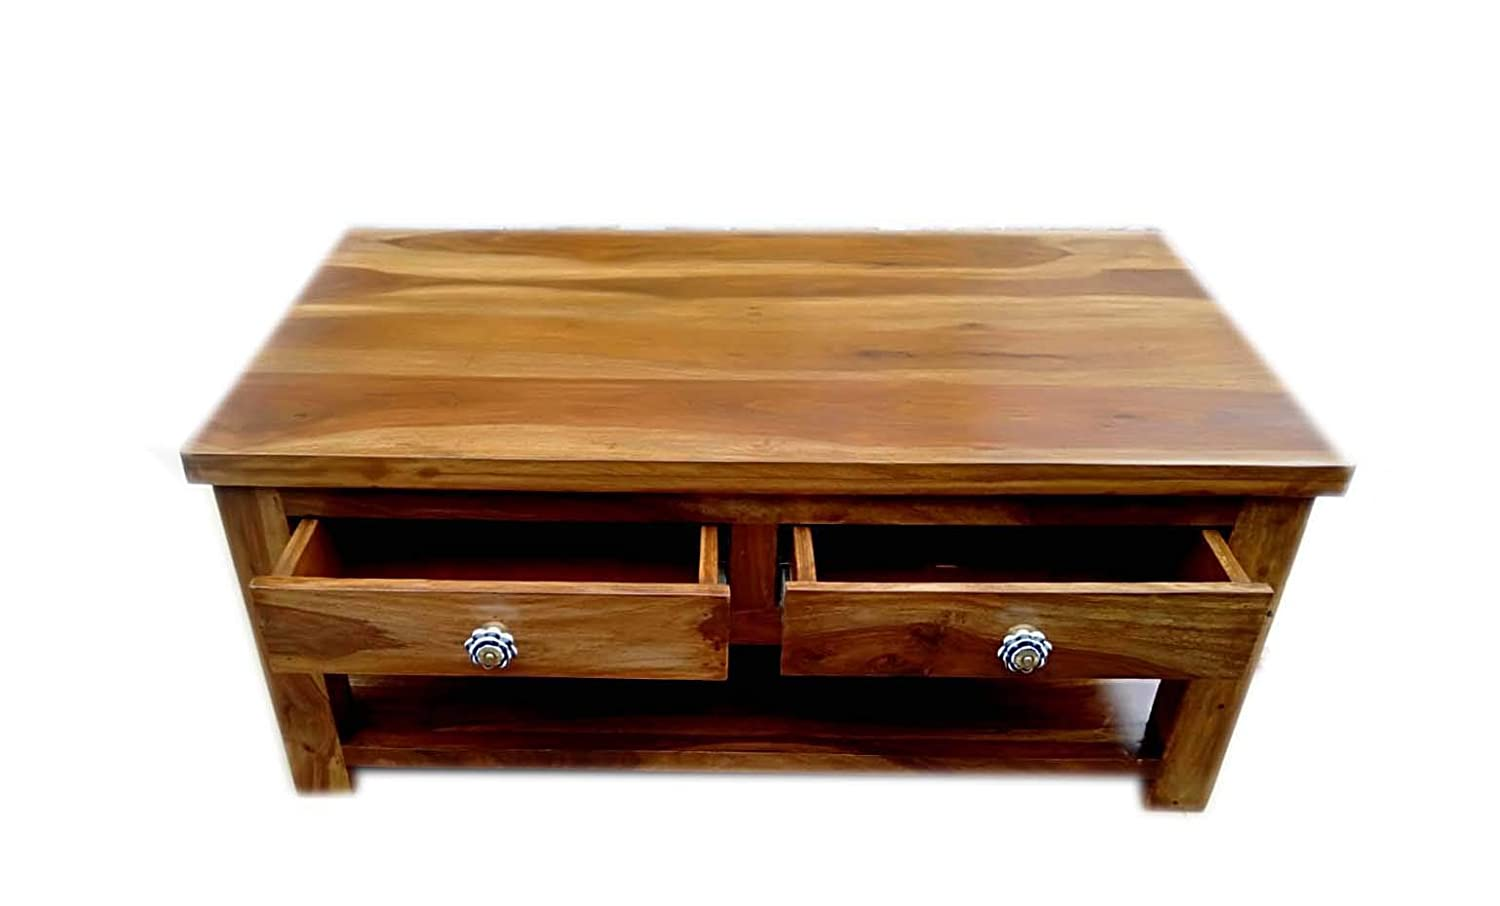 Exclusive Solid Rosewood (Sheesham) Coffee Table with Drawers